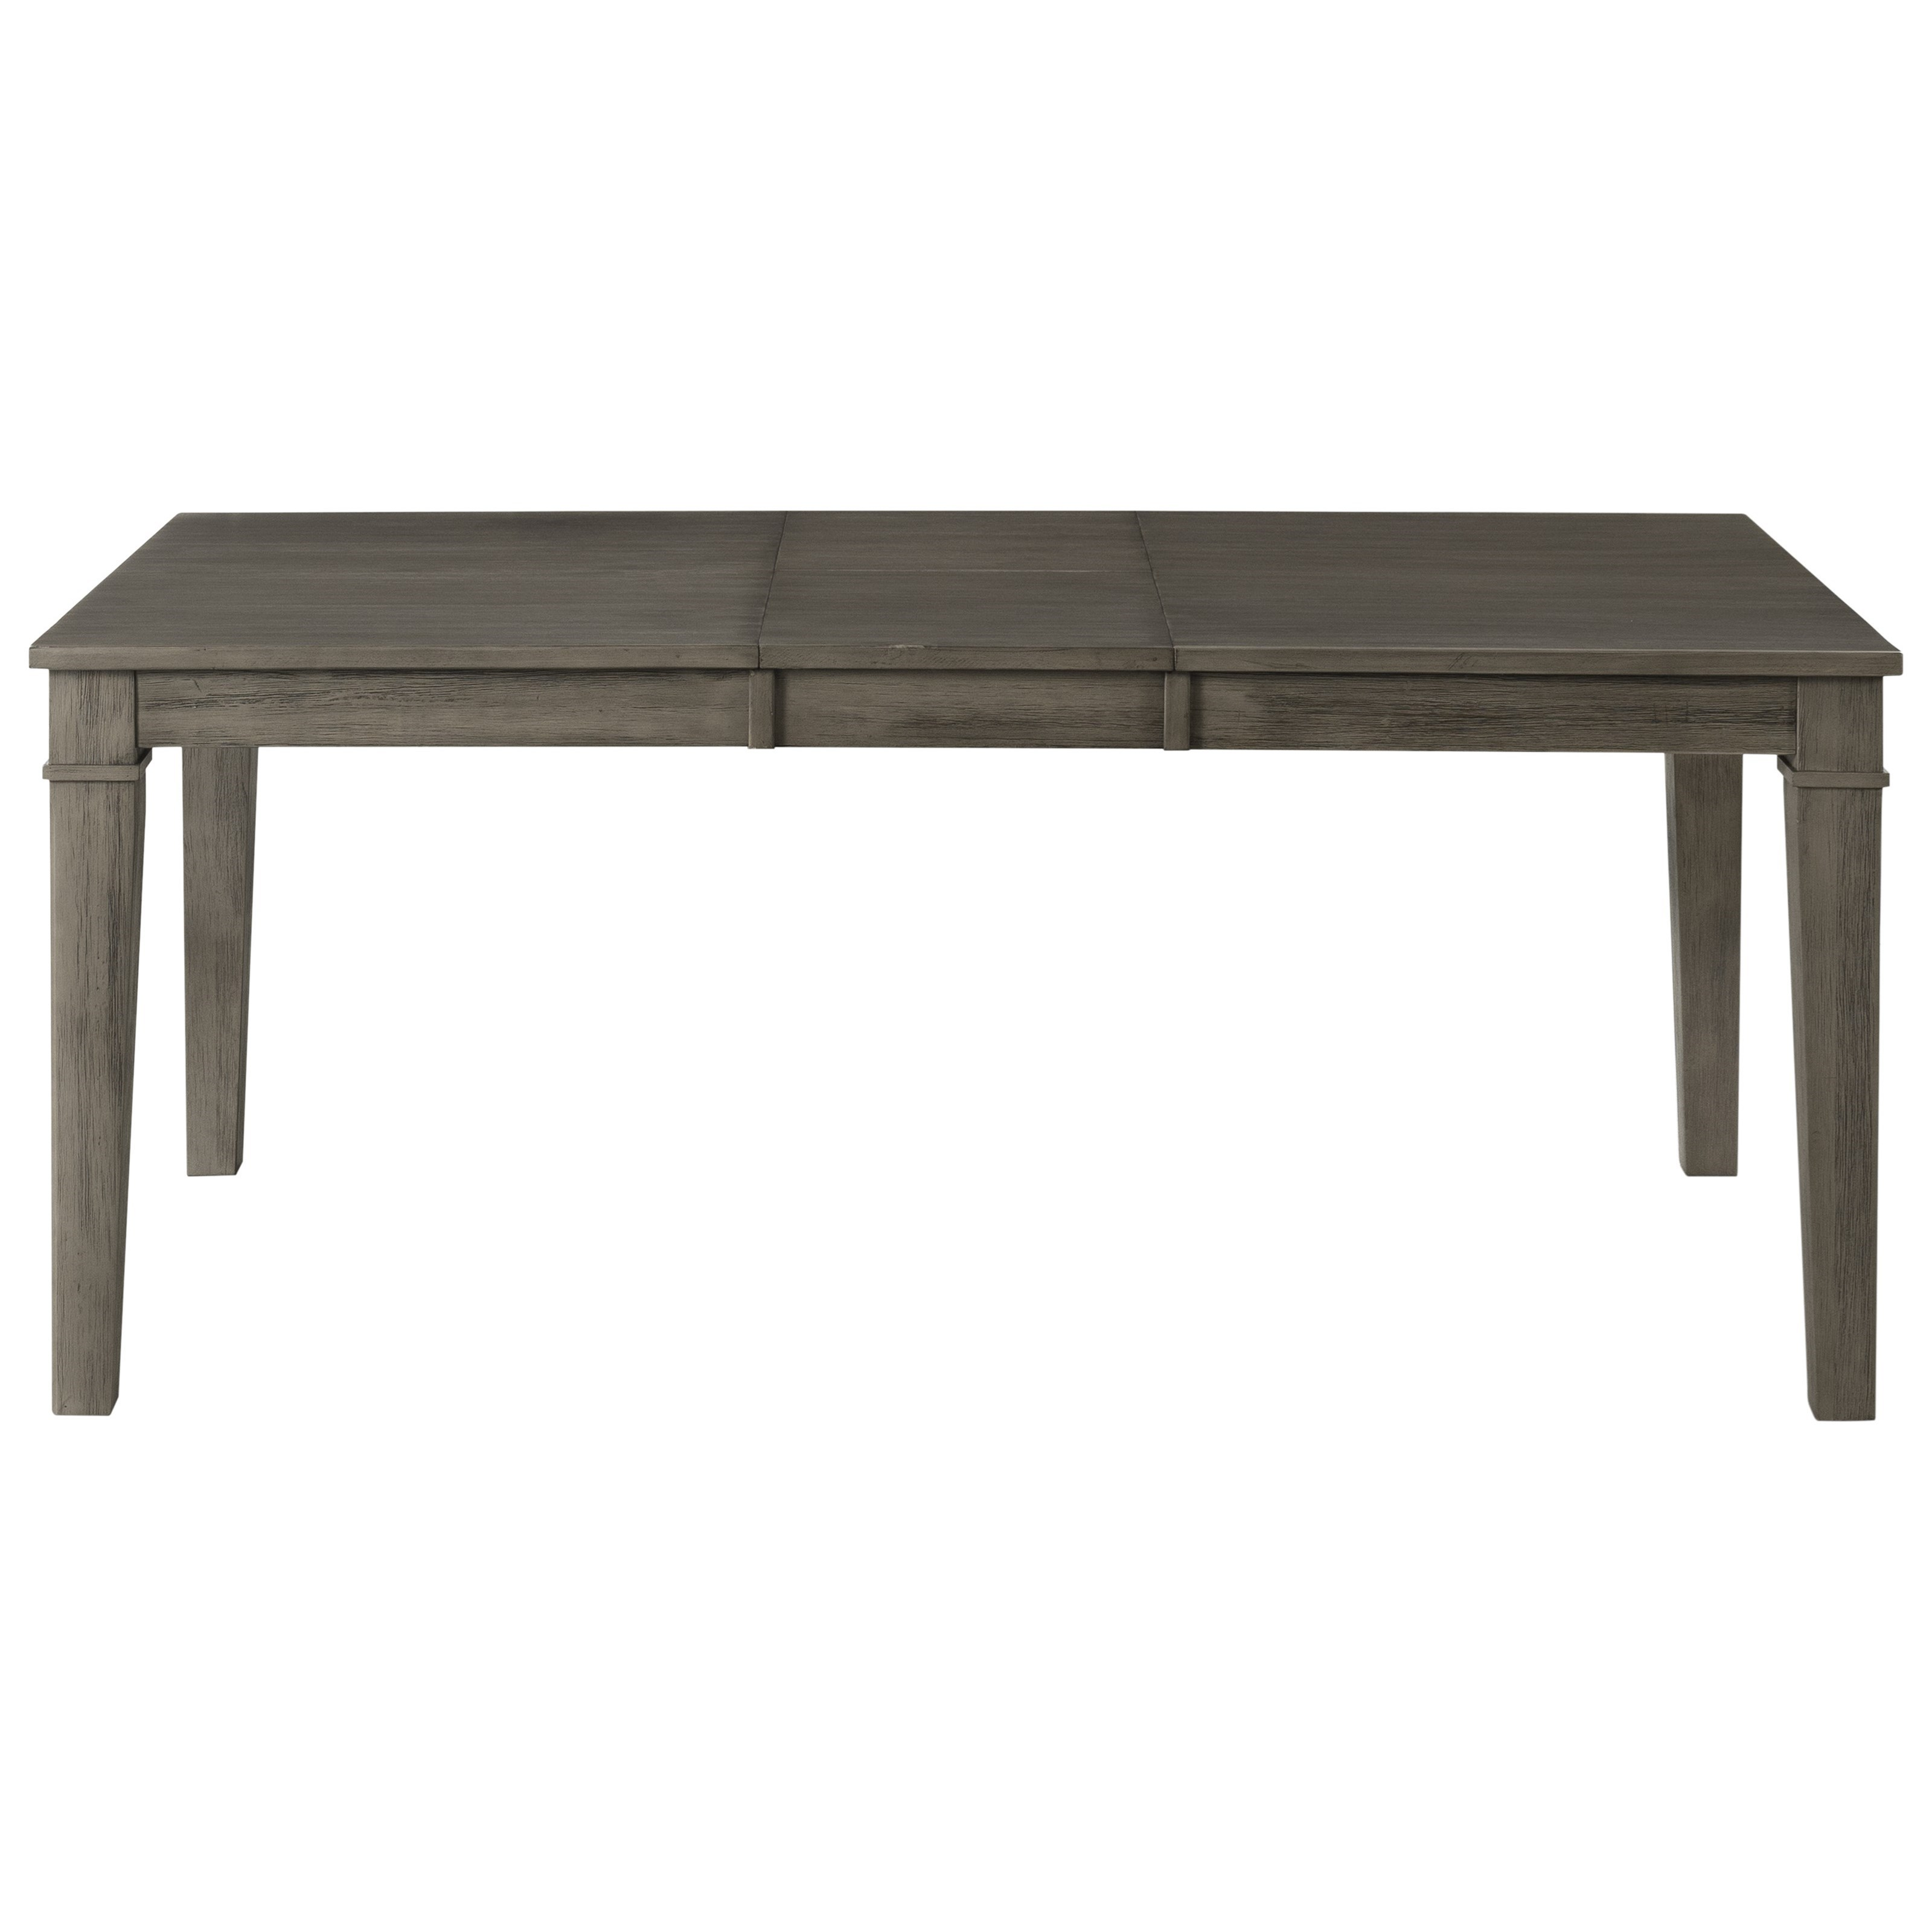 Huron Rectangular Standard Height Leg Table by AAmerica at Johnny Janosik